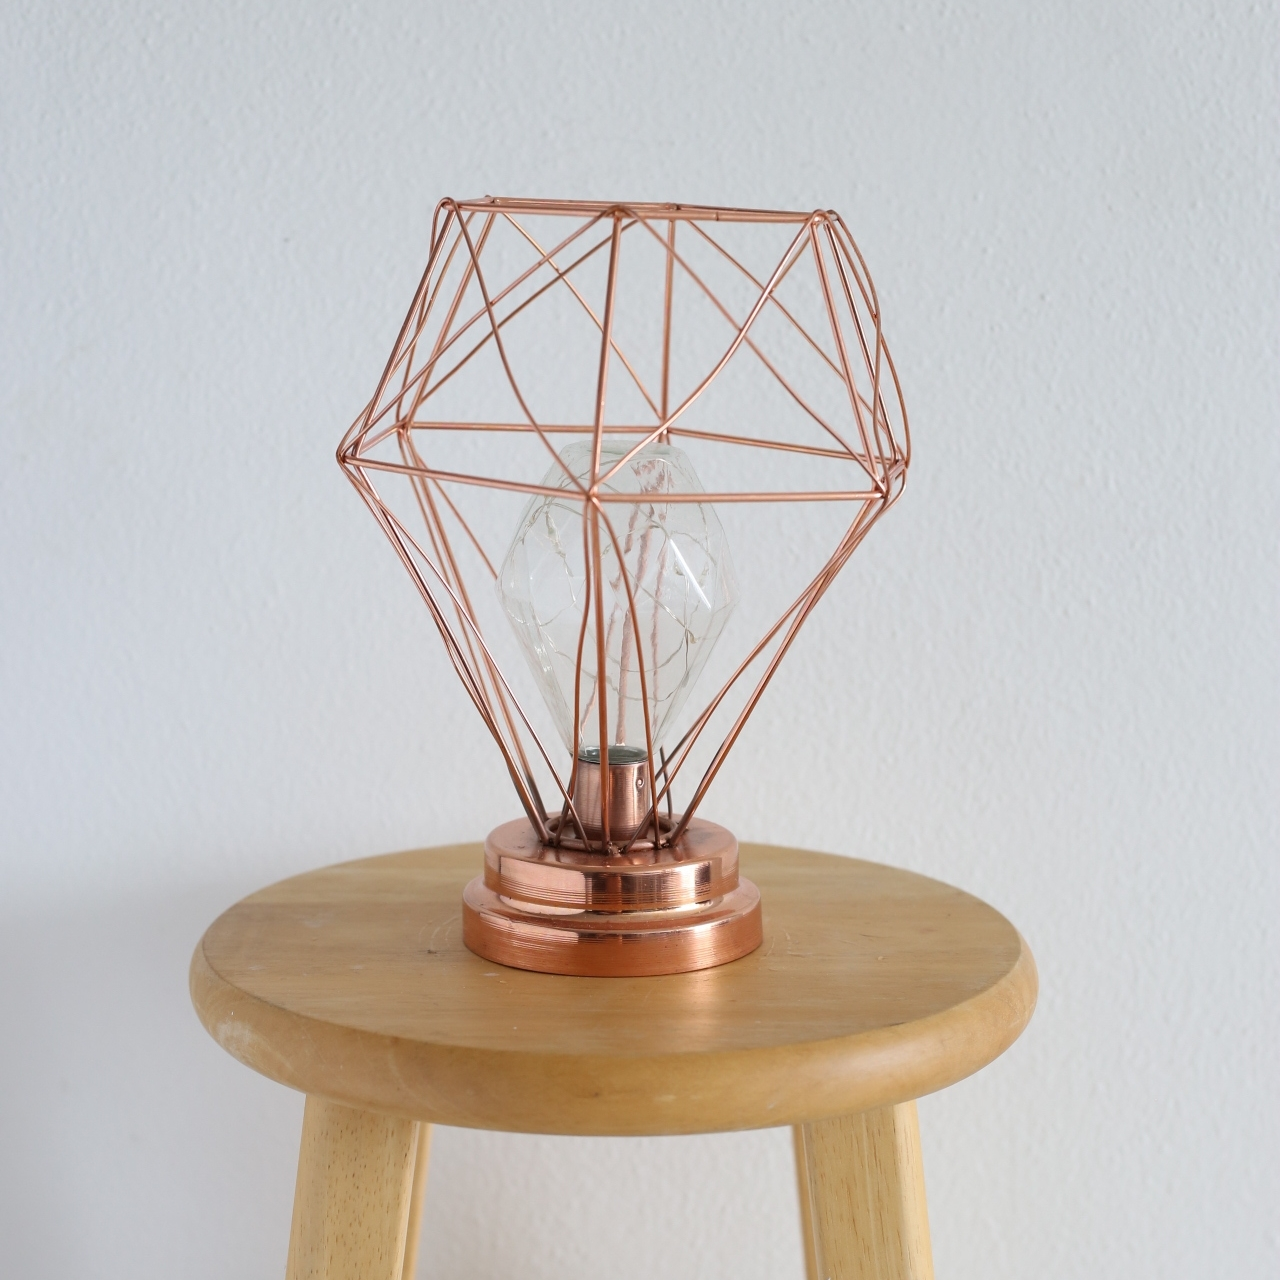 rose gold accent lamp - 10""